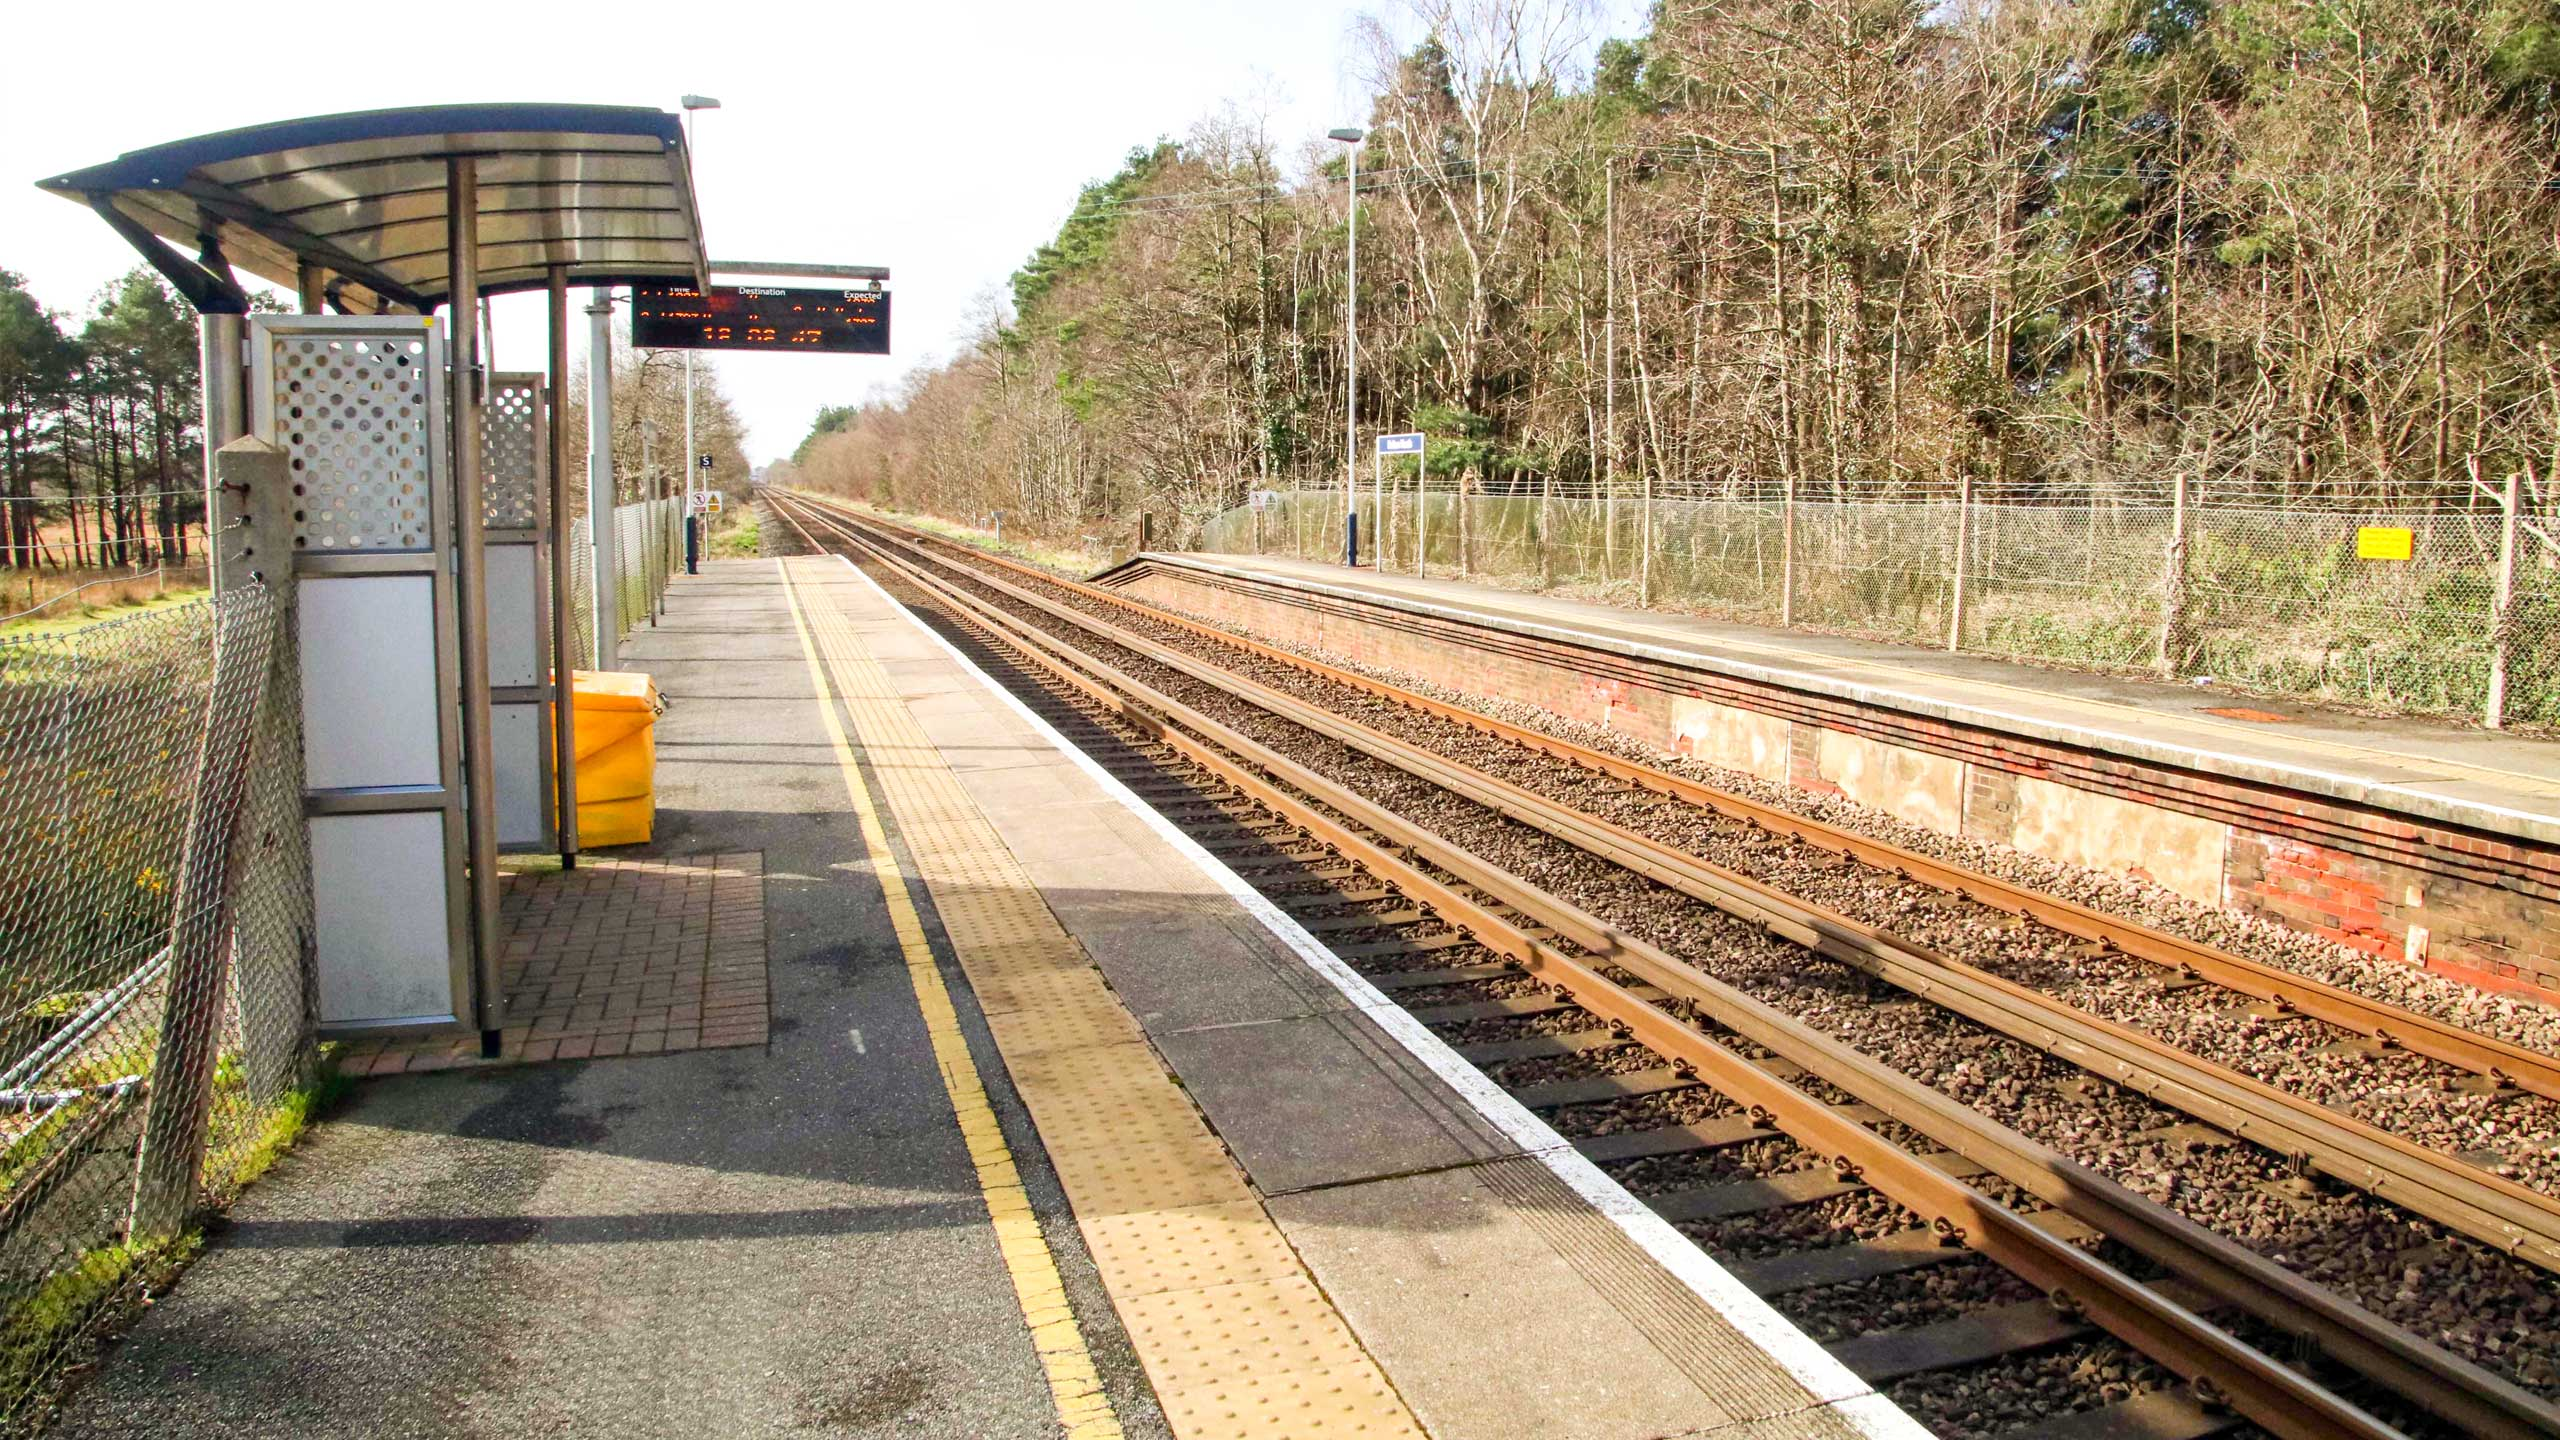 Purbeck Community Rail Partnership Sliding Banner Holton Heath Railway Station 07 2560x1440px